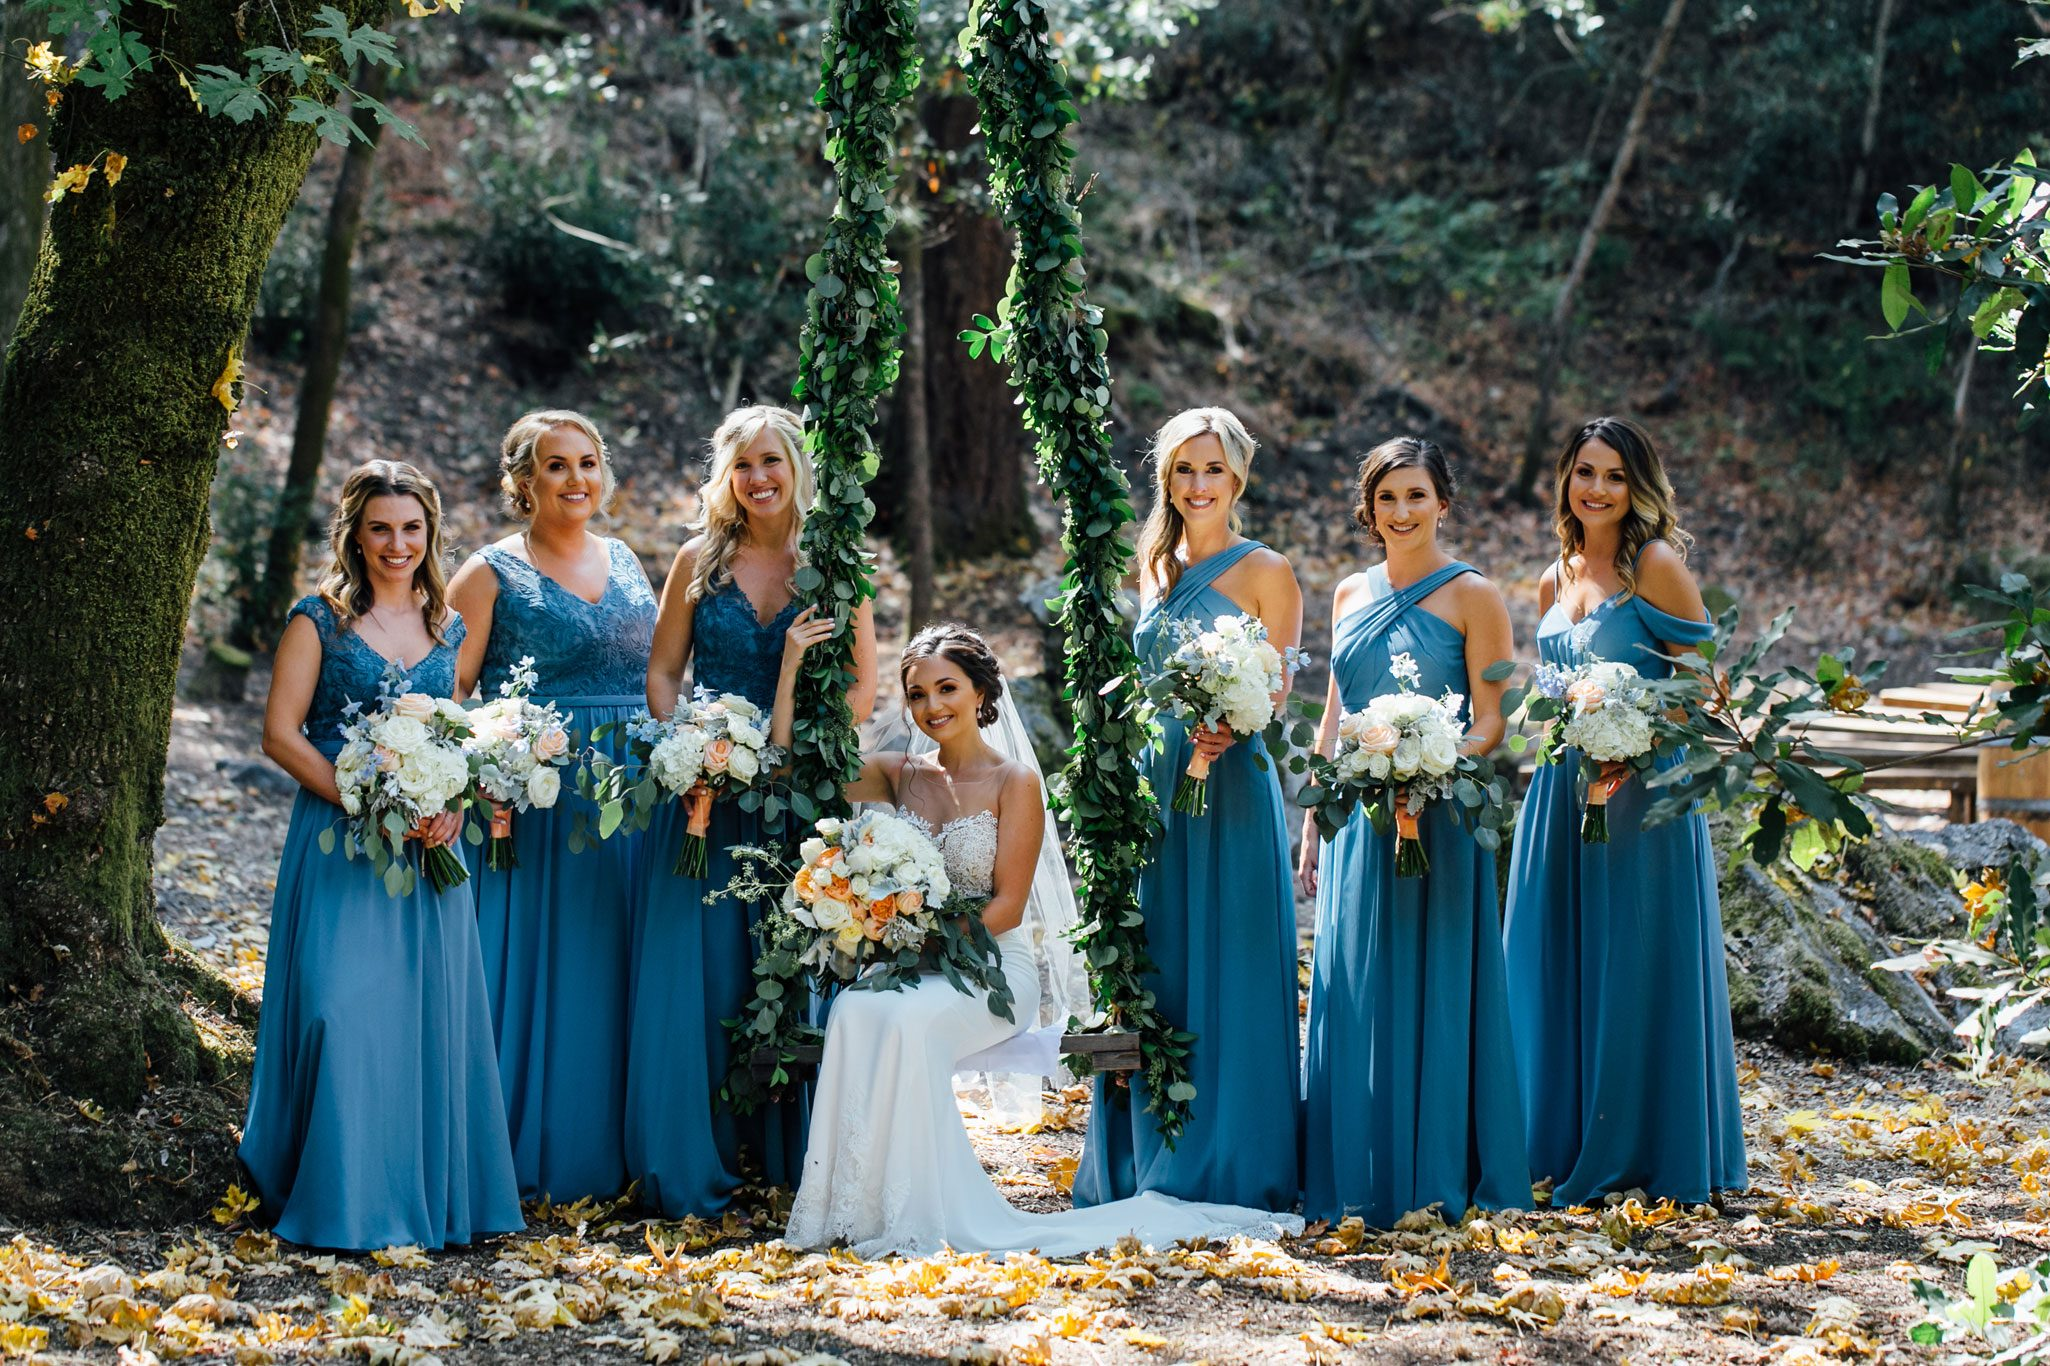 Bridesmaids - A Romantic Backyard Wedding in Wine Country, Napa Valley California